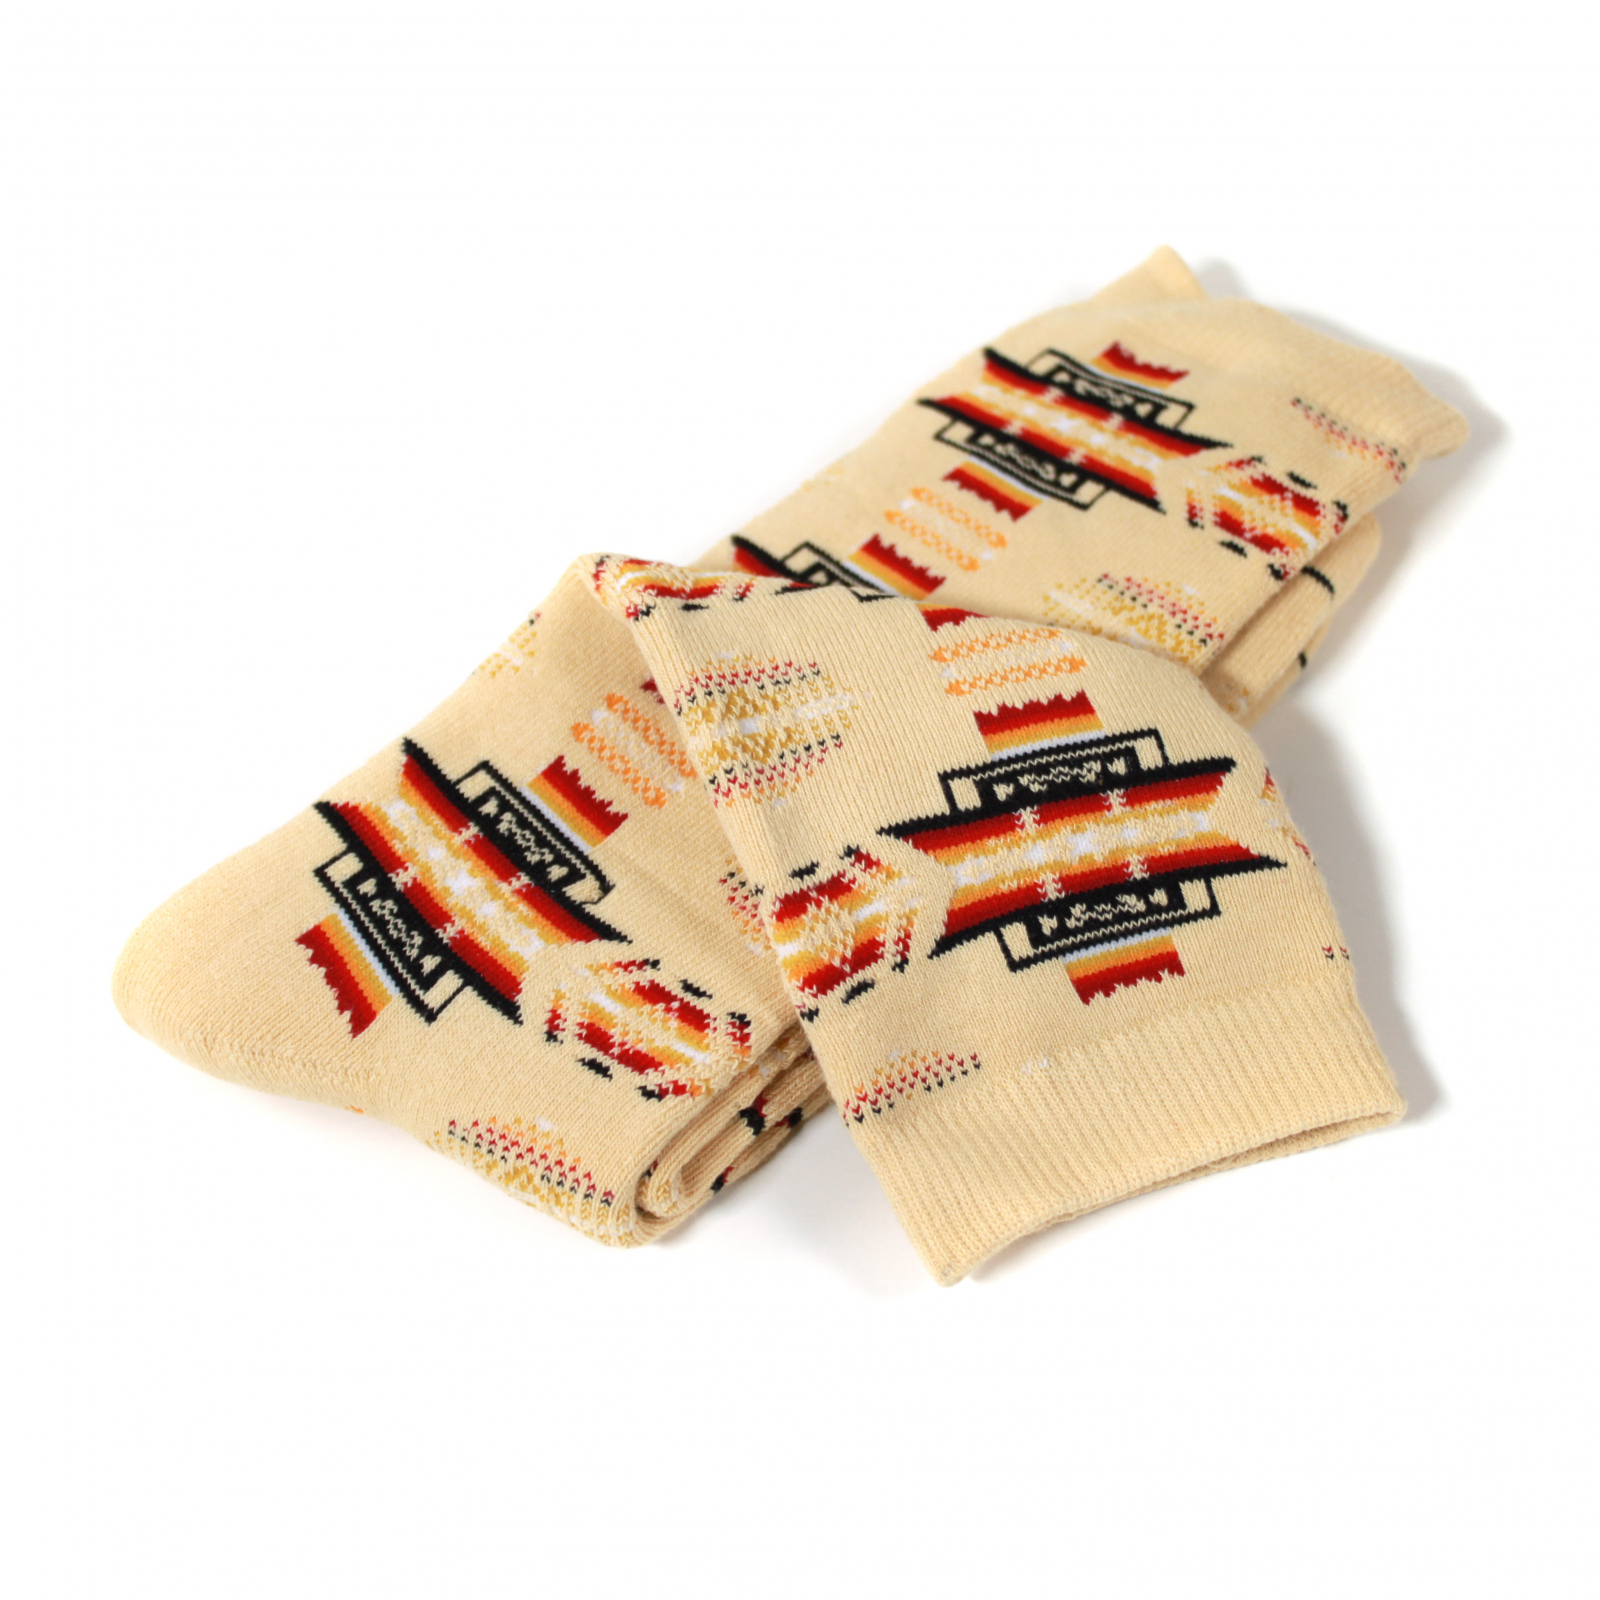 ASR Outdoor Adventure Wilderness Socks One Size Fits Most Southwest Pattern Tan